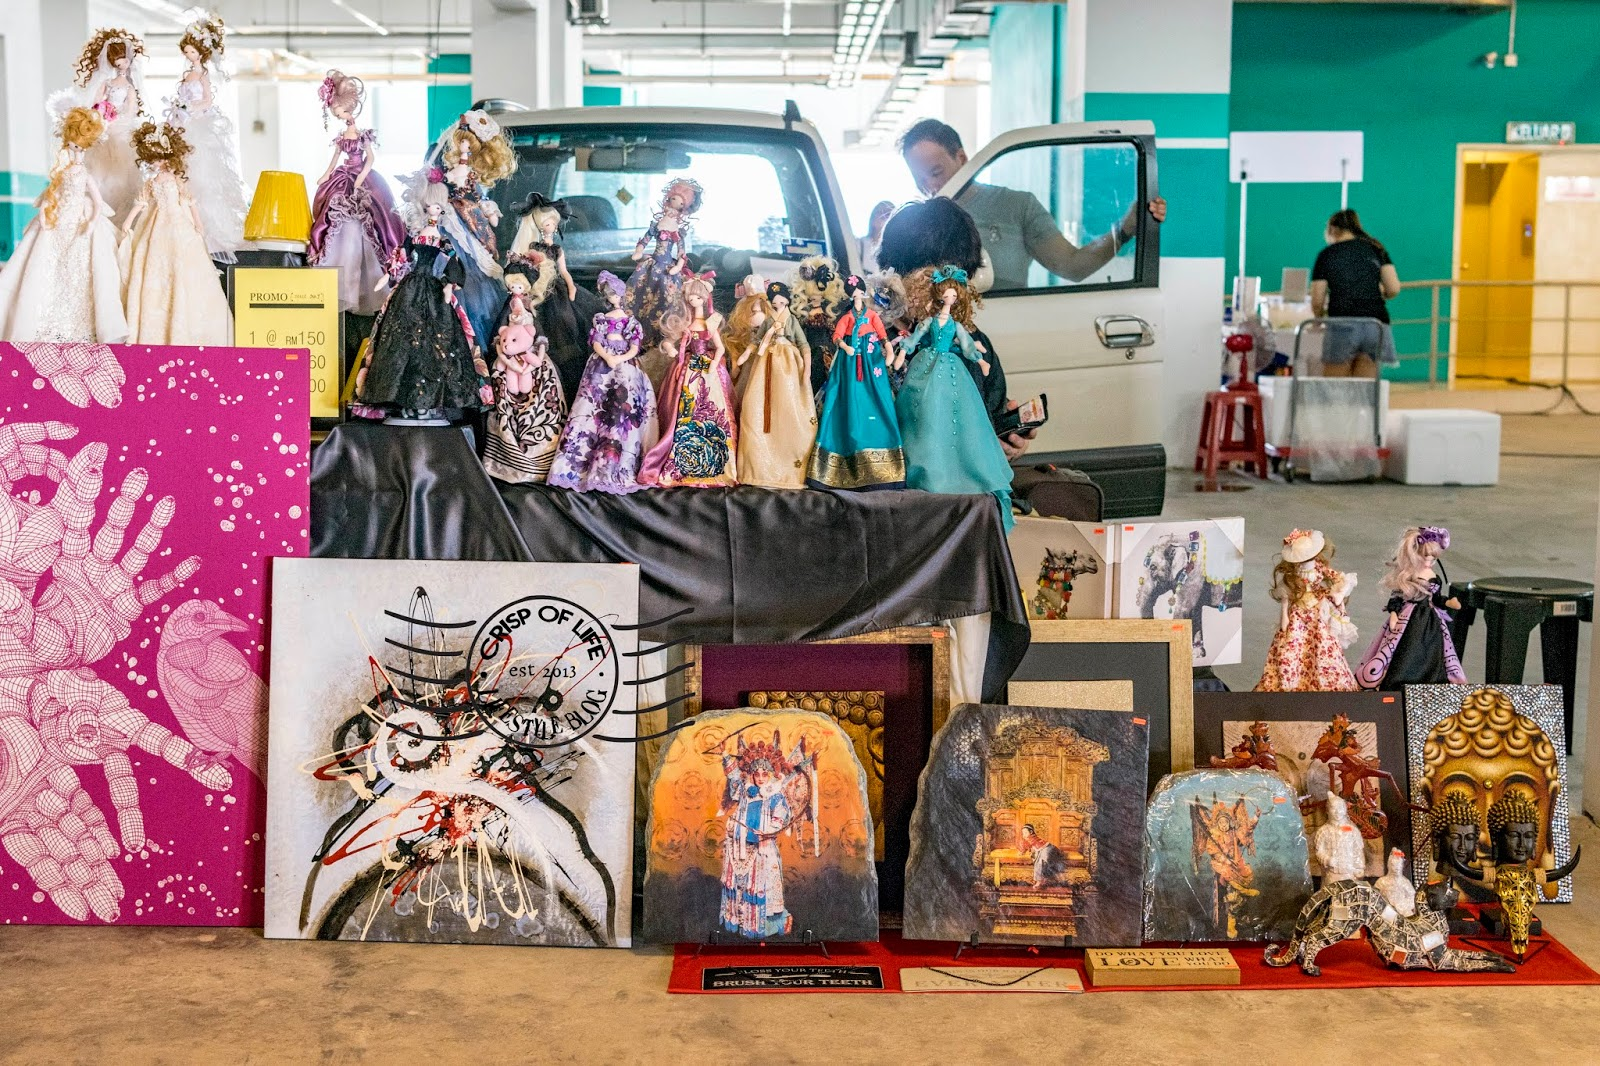 Jumping Noisy Flea Market Every First Saturday of the Month at M Mall Penang